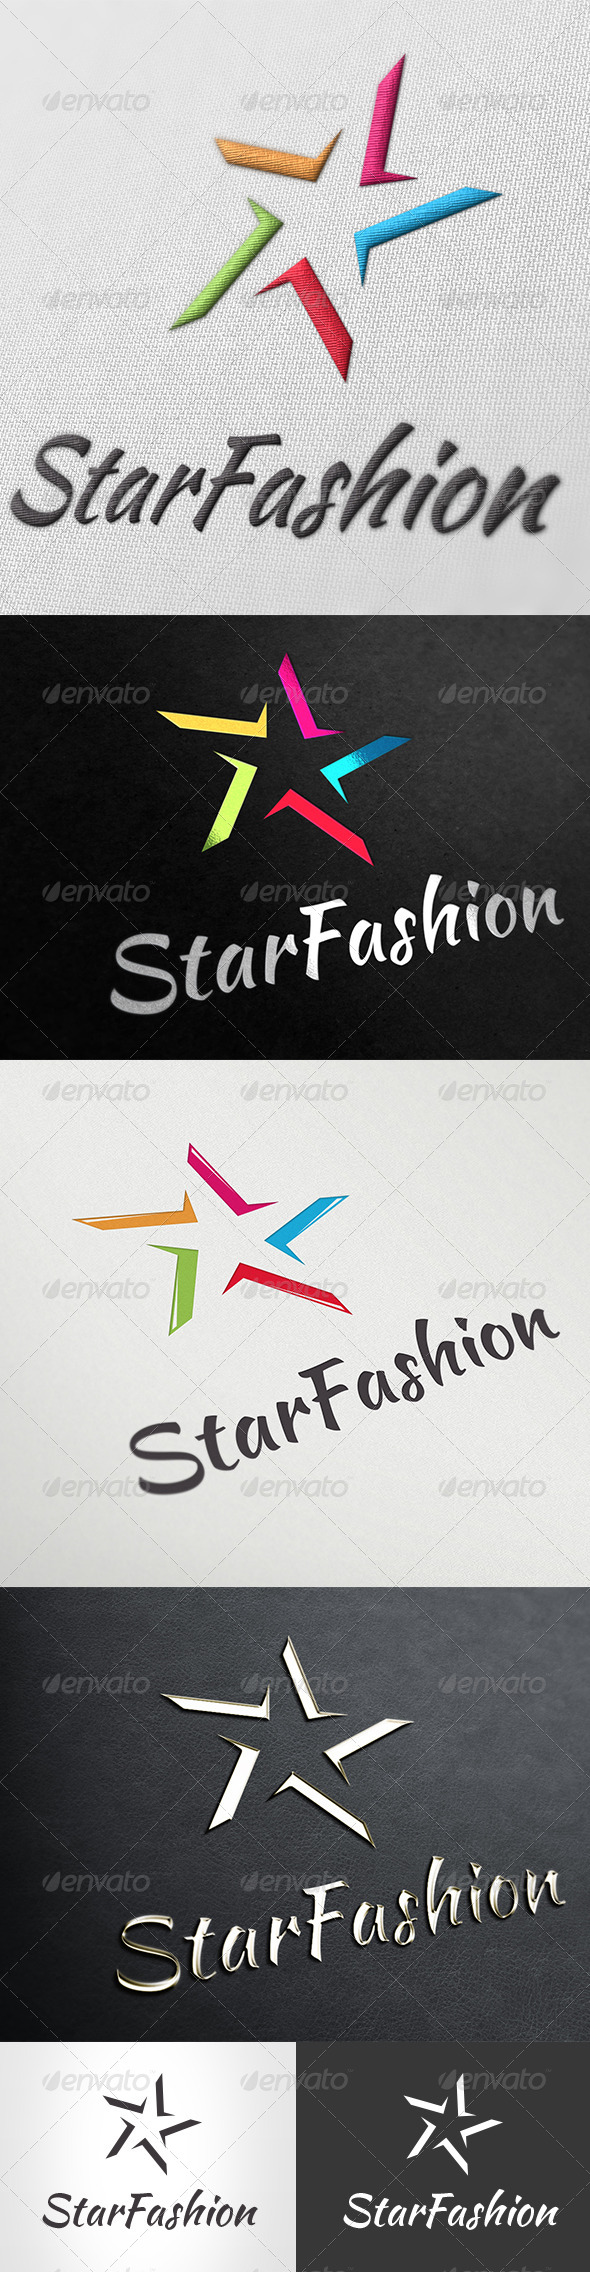 Logo Star Fashion